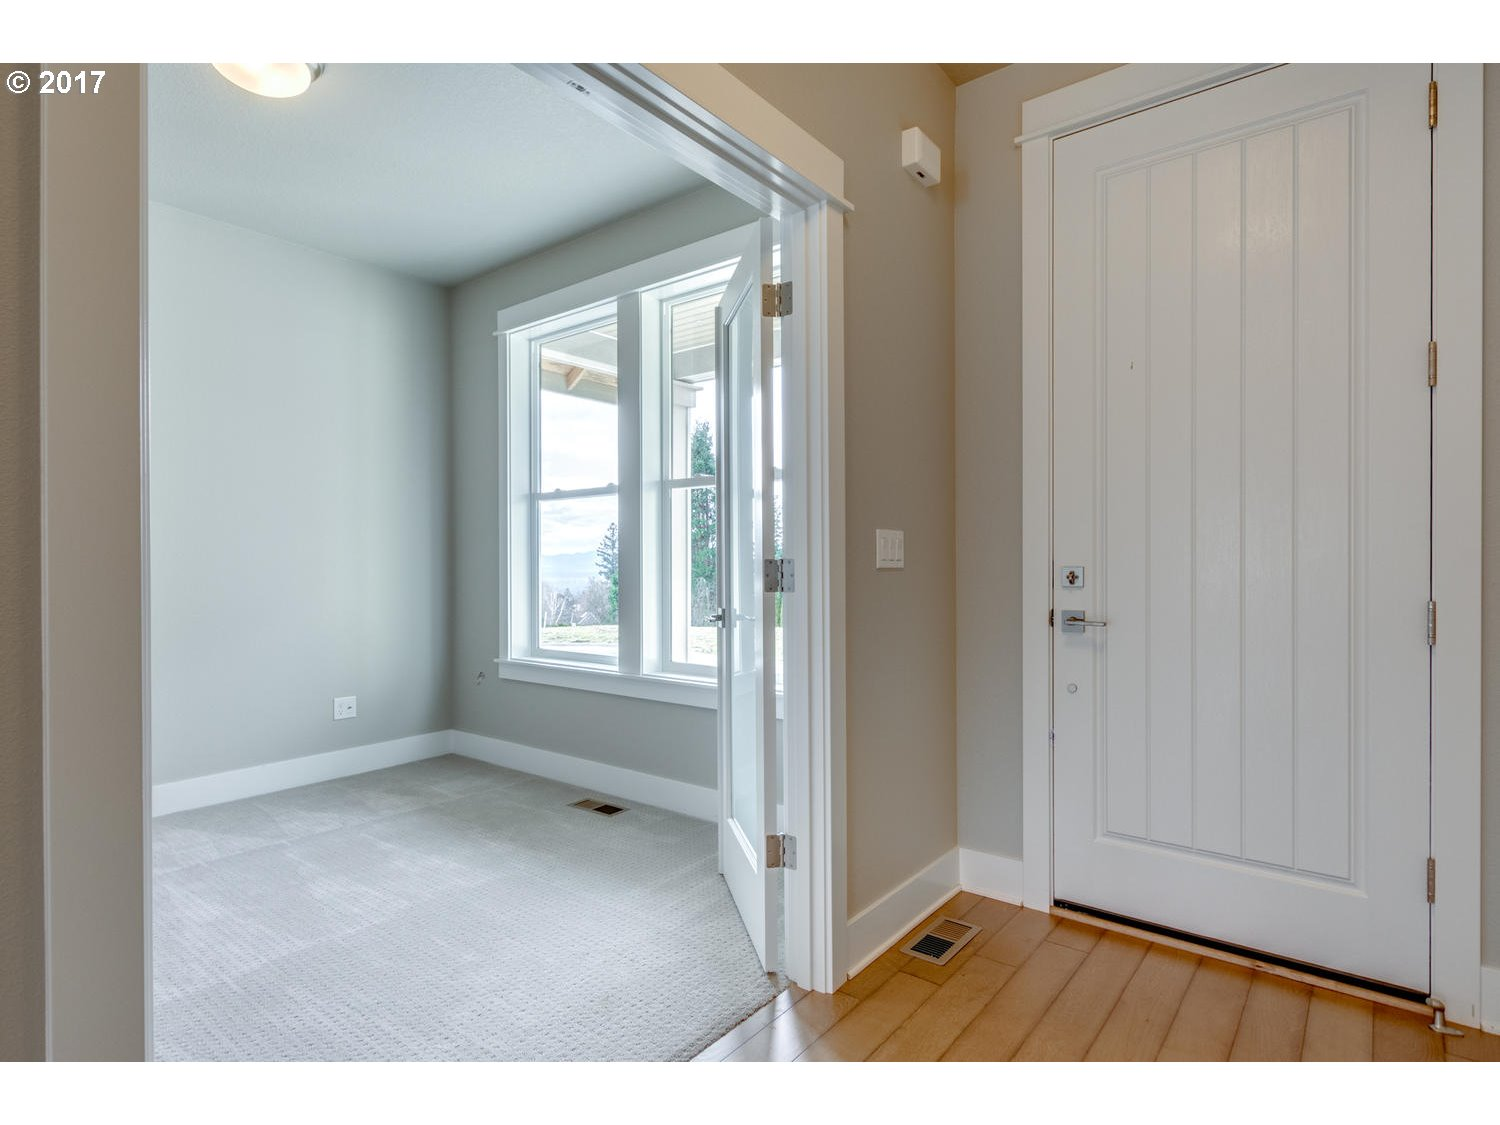 2125 sq. ft 4 bedrooms 2 bathrooms  House For Sale,Portland, OR